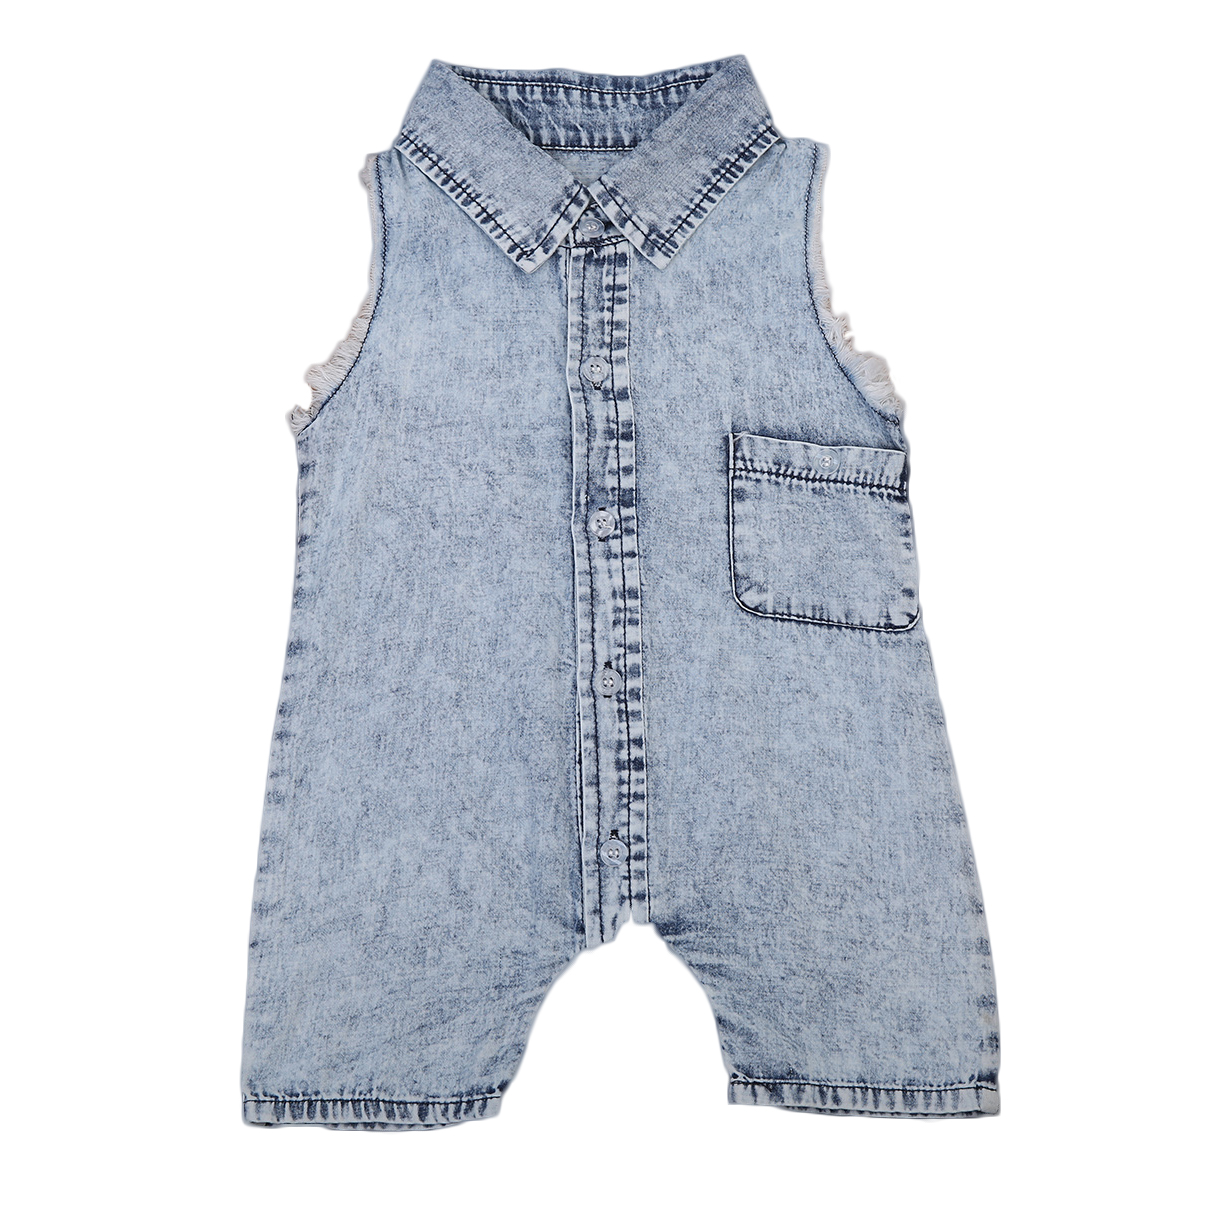 2017 Summer Denim Newborn Baby Boys Sleeveless Romper Infant Boy Girl Jumpsuit Clothes Outfit-in ...